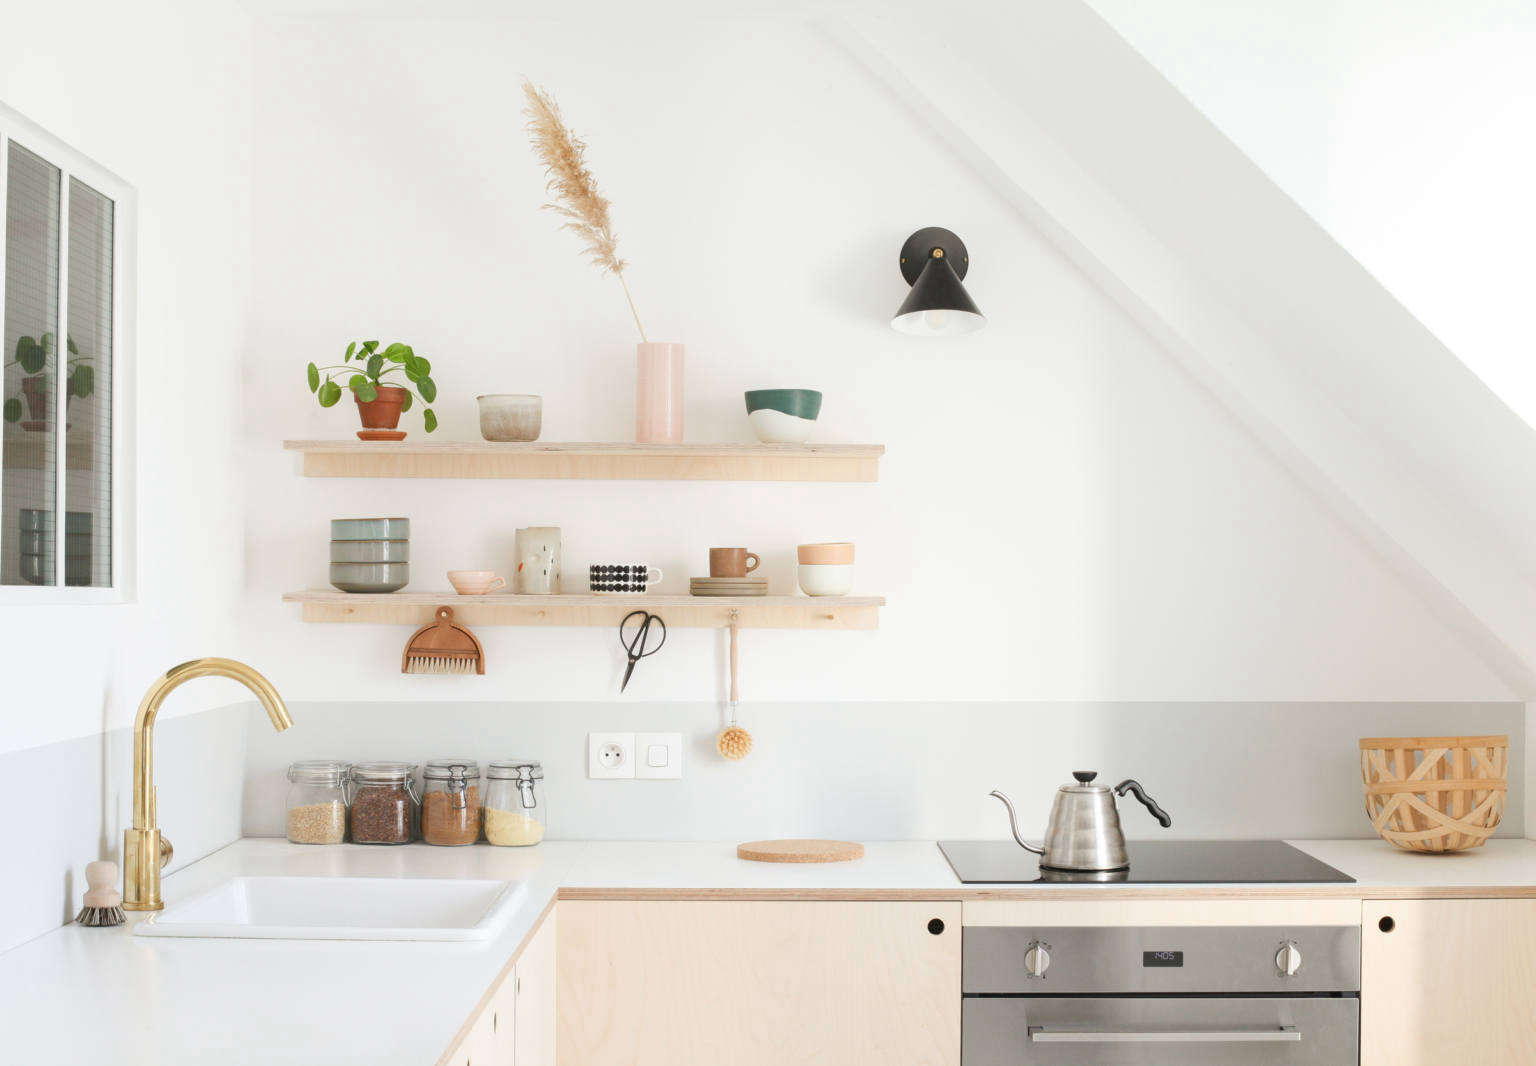 Kitchen of the Week: Two Young Paris Architects Completely Redo Their Kitchen for Under $4,300